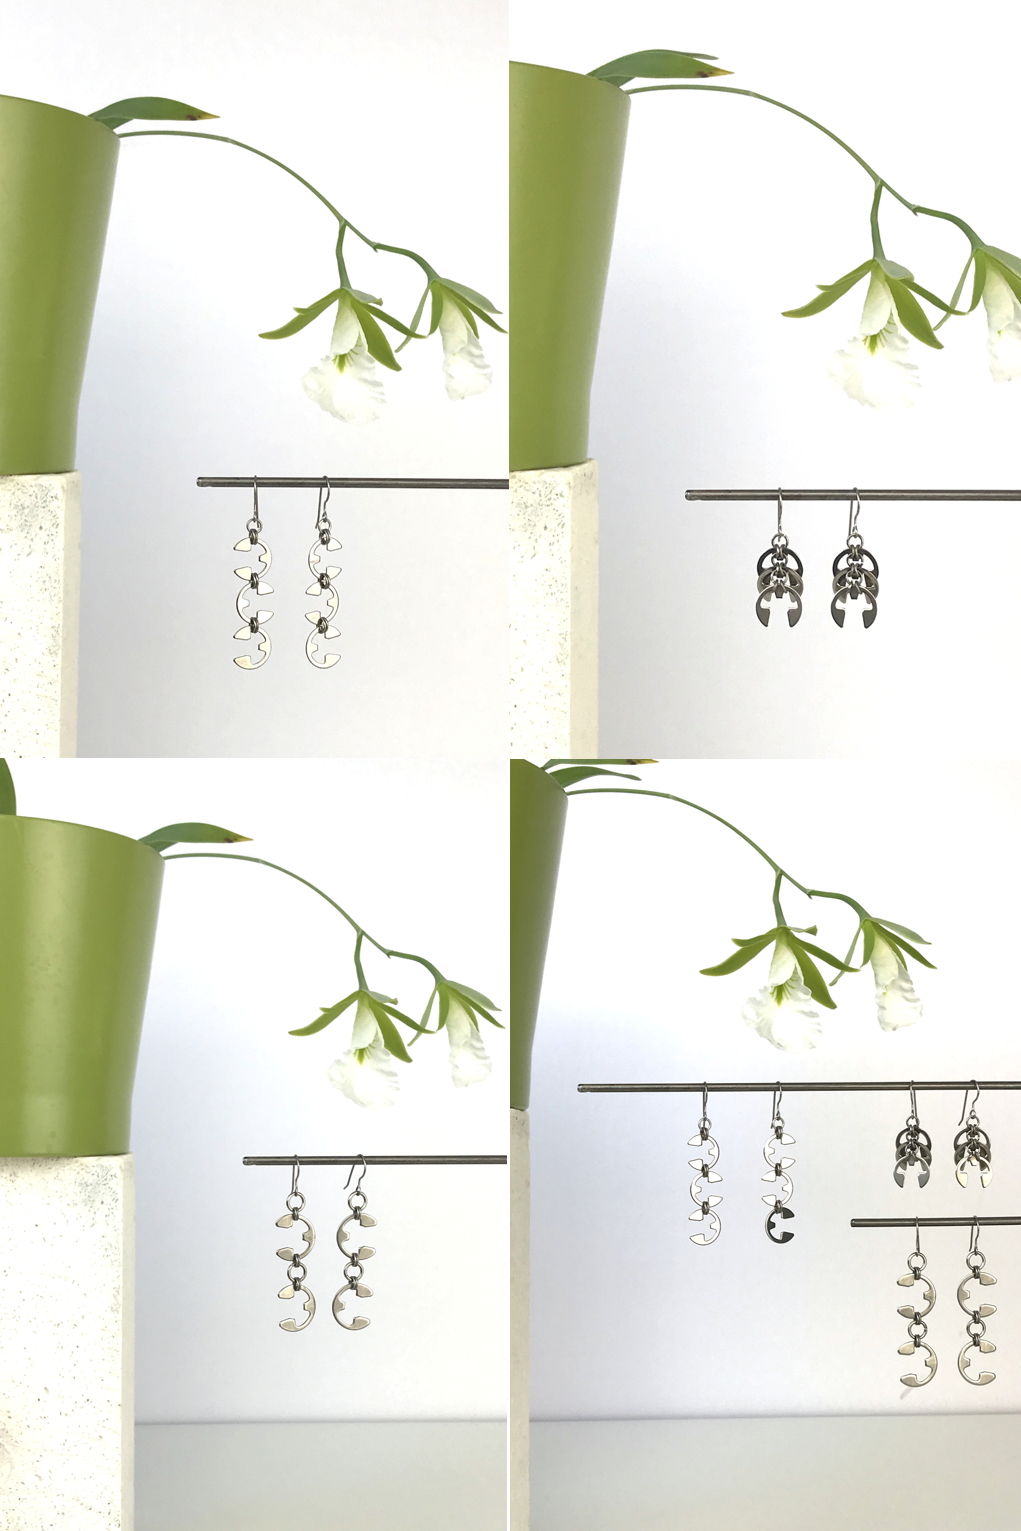 Compiled image of 4 photos featuring Wraptillion's Vine Earrings, Fir Cone Earrings, and Tendril Earrings with blooming orchid Encyclia mariae in a green cachepot.